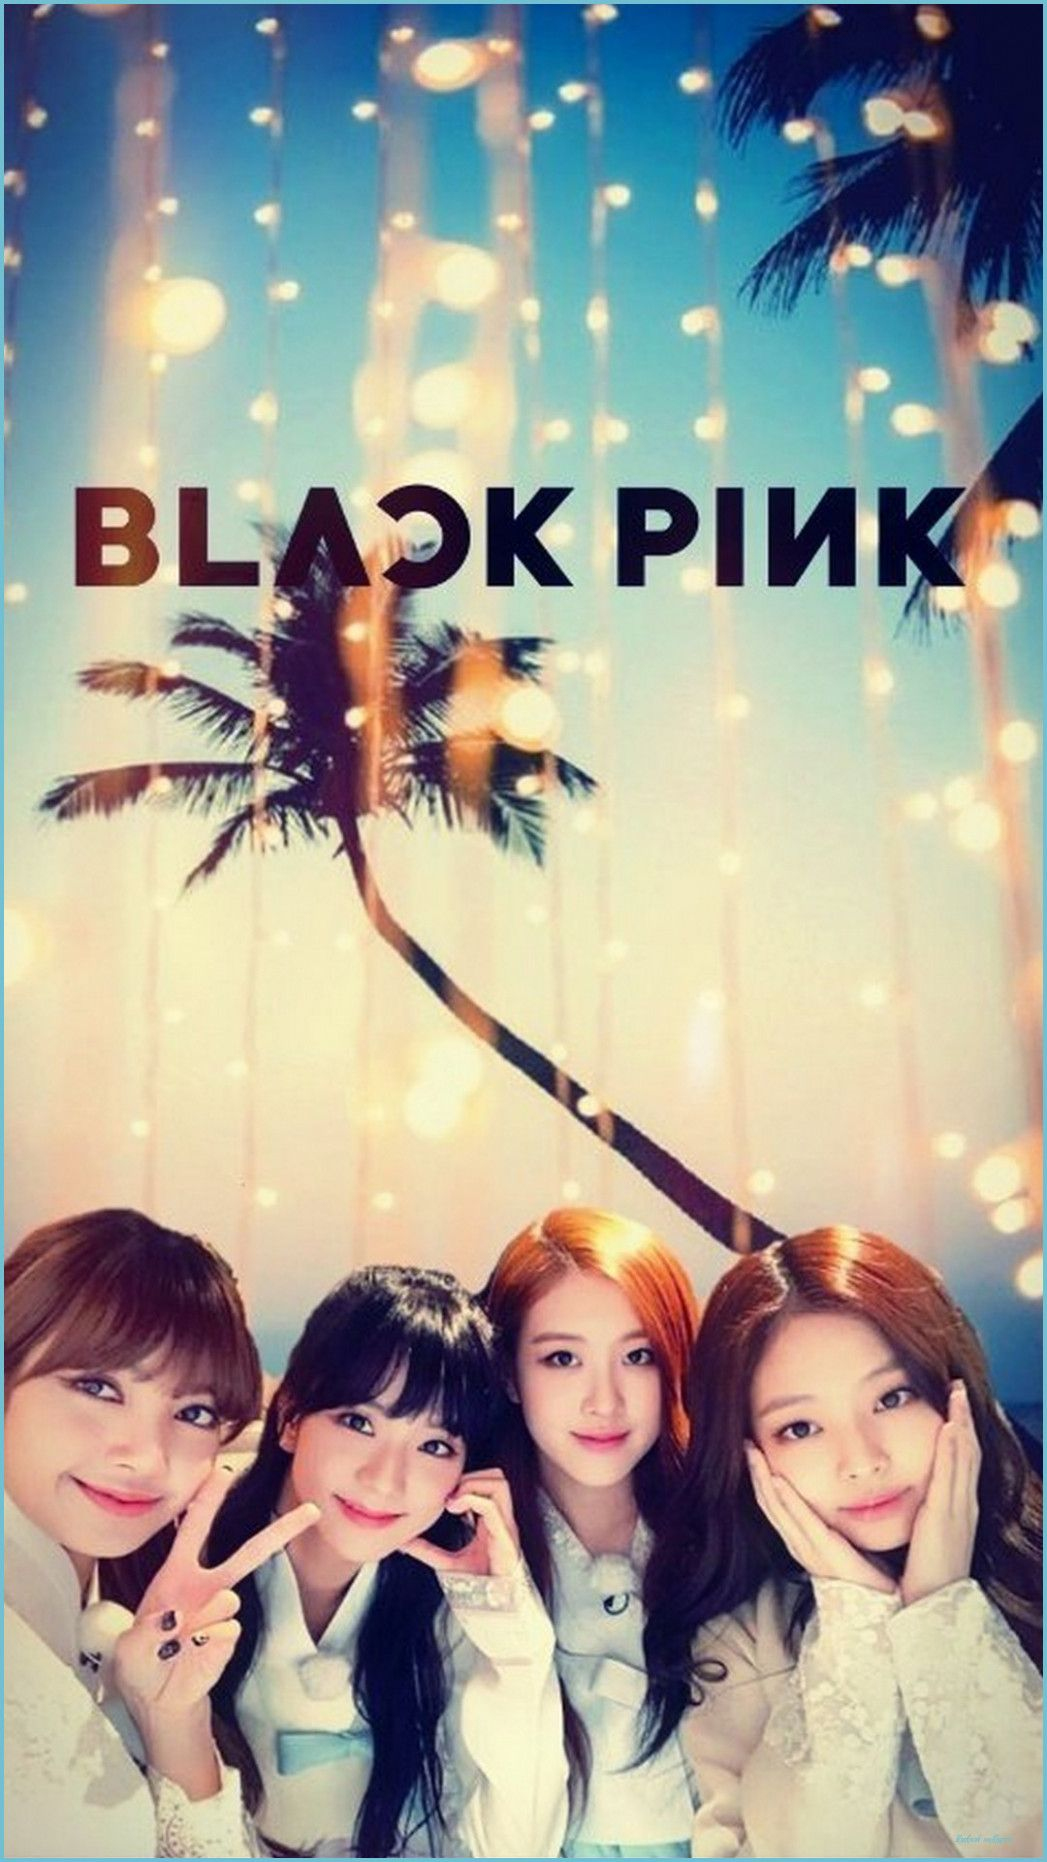 How Blackpink Wallpapers Is Going To Change Your Business Strategies Blackpink Wallpapers Kpop Iphone Wallpaper Wallpaper Iphone Cute Iphone Wallpaper Images